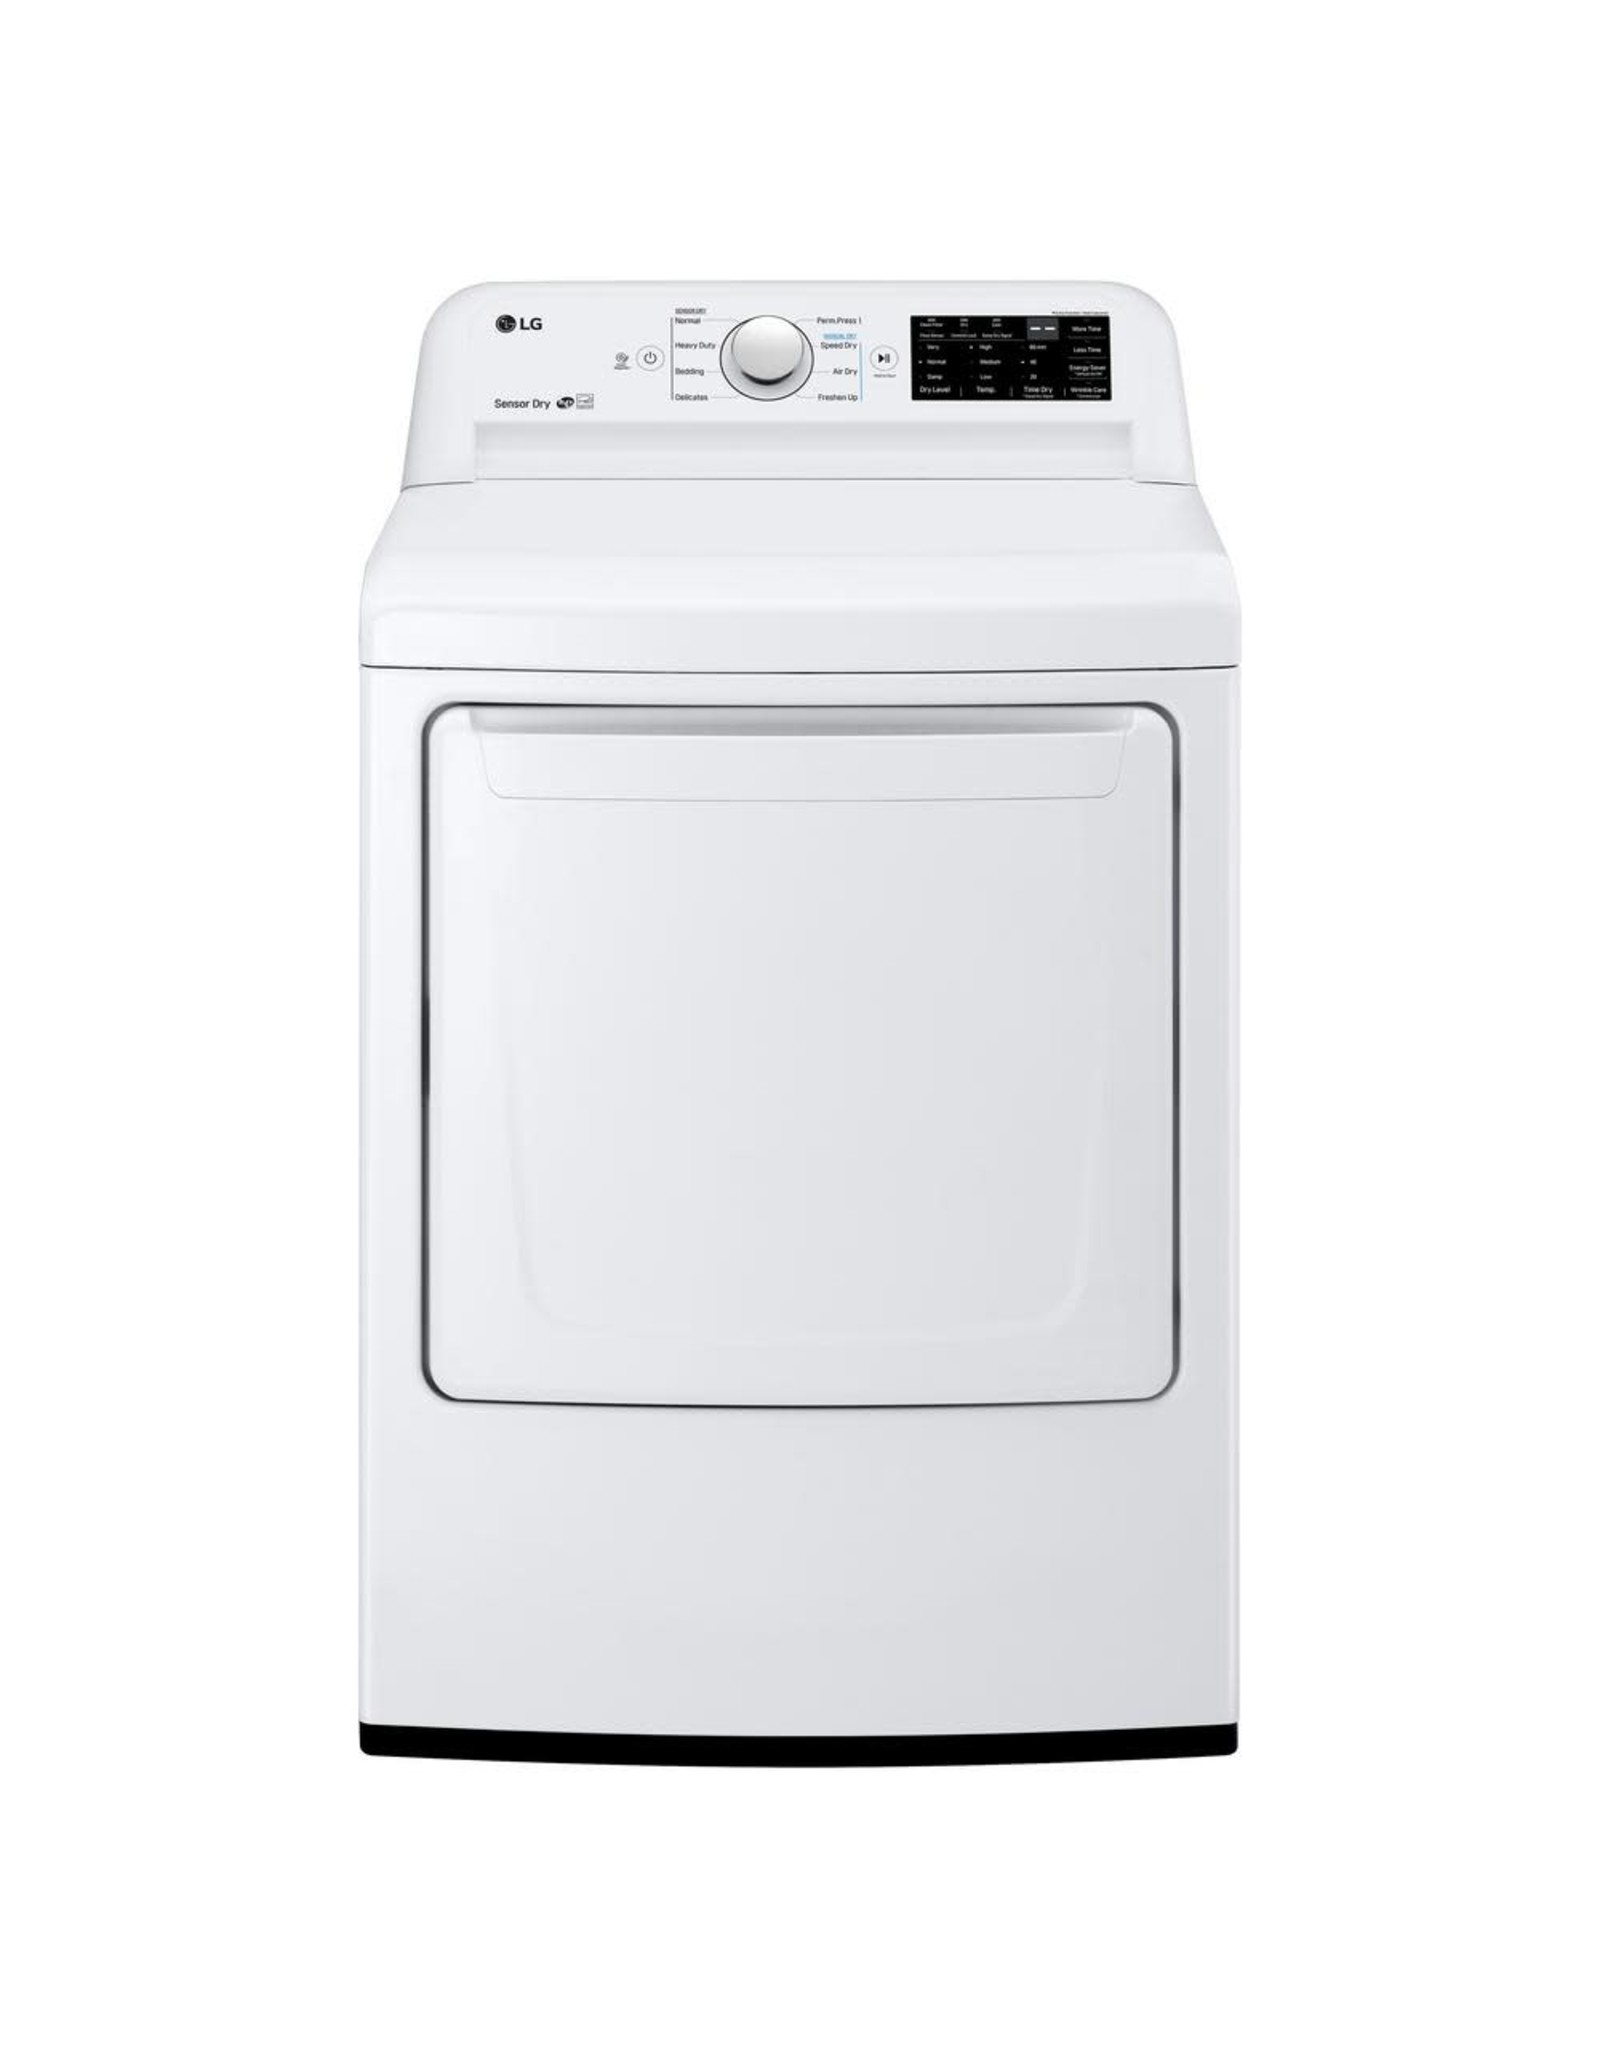 LG Electronics DLE7100W 7.3 cu. ft. Ultra Large HE Front Load Electric Dryer with Sensor Dry and SmartDiagnosis in White, ENERGY STAR